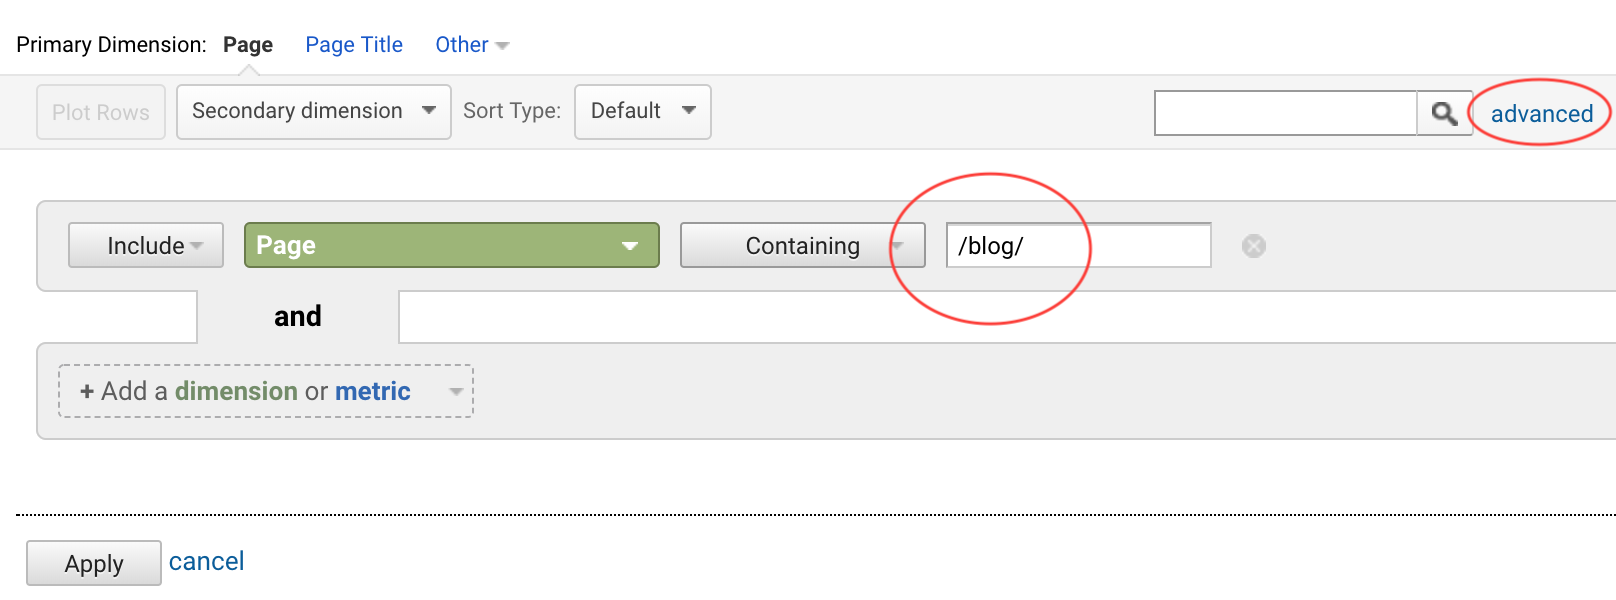 Set advanced filter in Google Analytics for tracking blog visits on WordPress site